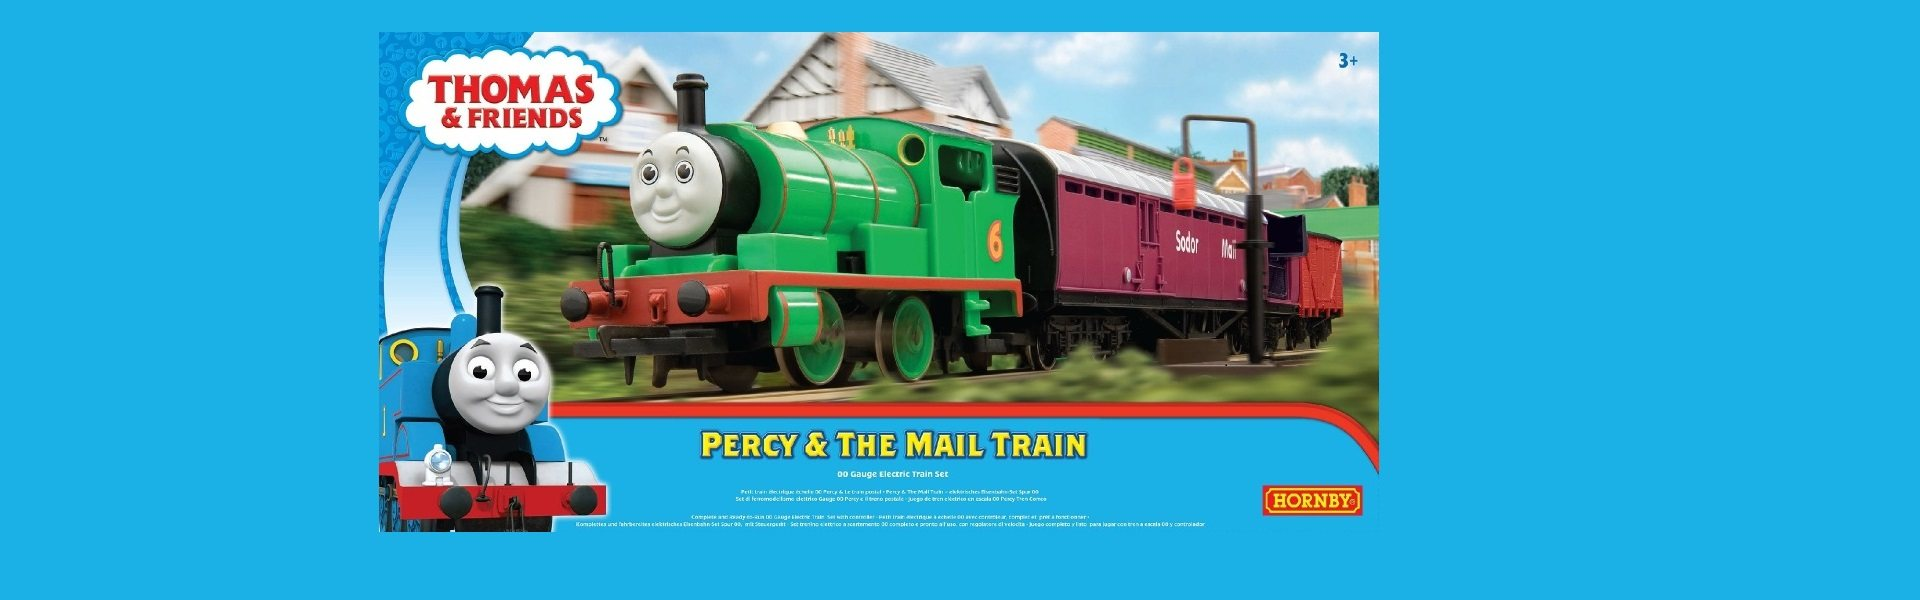 Percy & The Mail Train Set Only £79.20